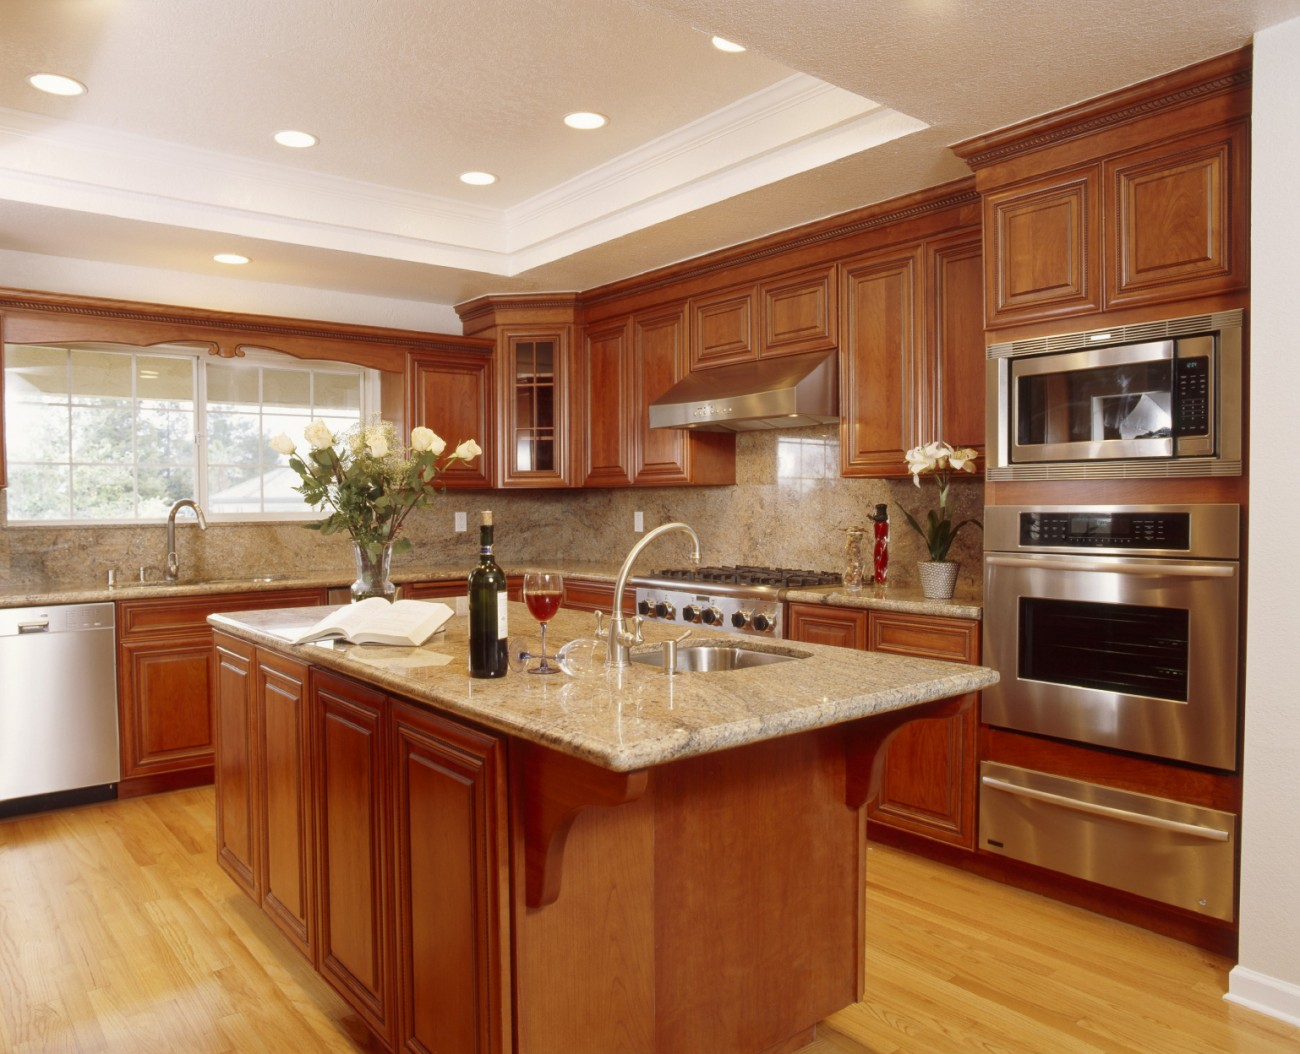 Http Www Integrityhomecontractors Com Services Renovate Kitchens And Baths Beautiful Kitchen 3